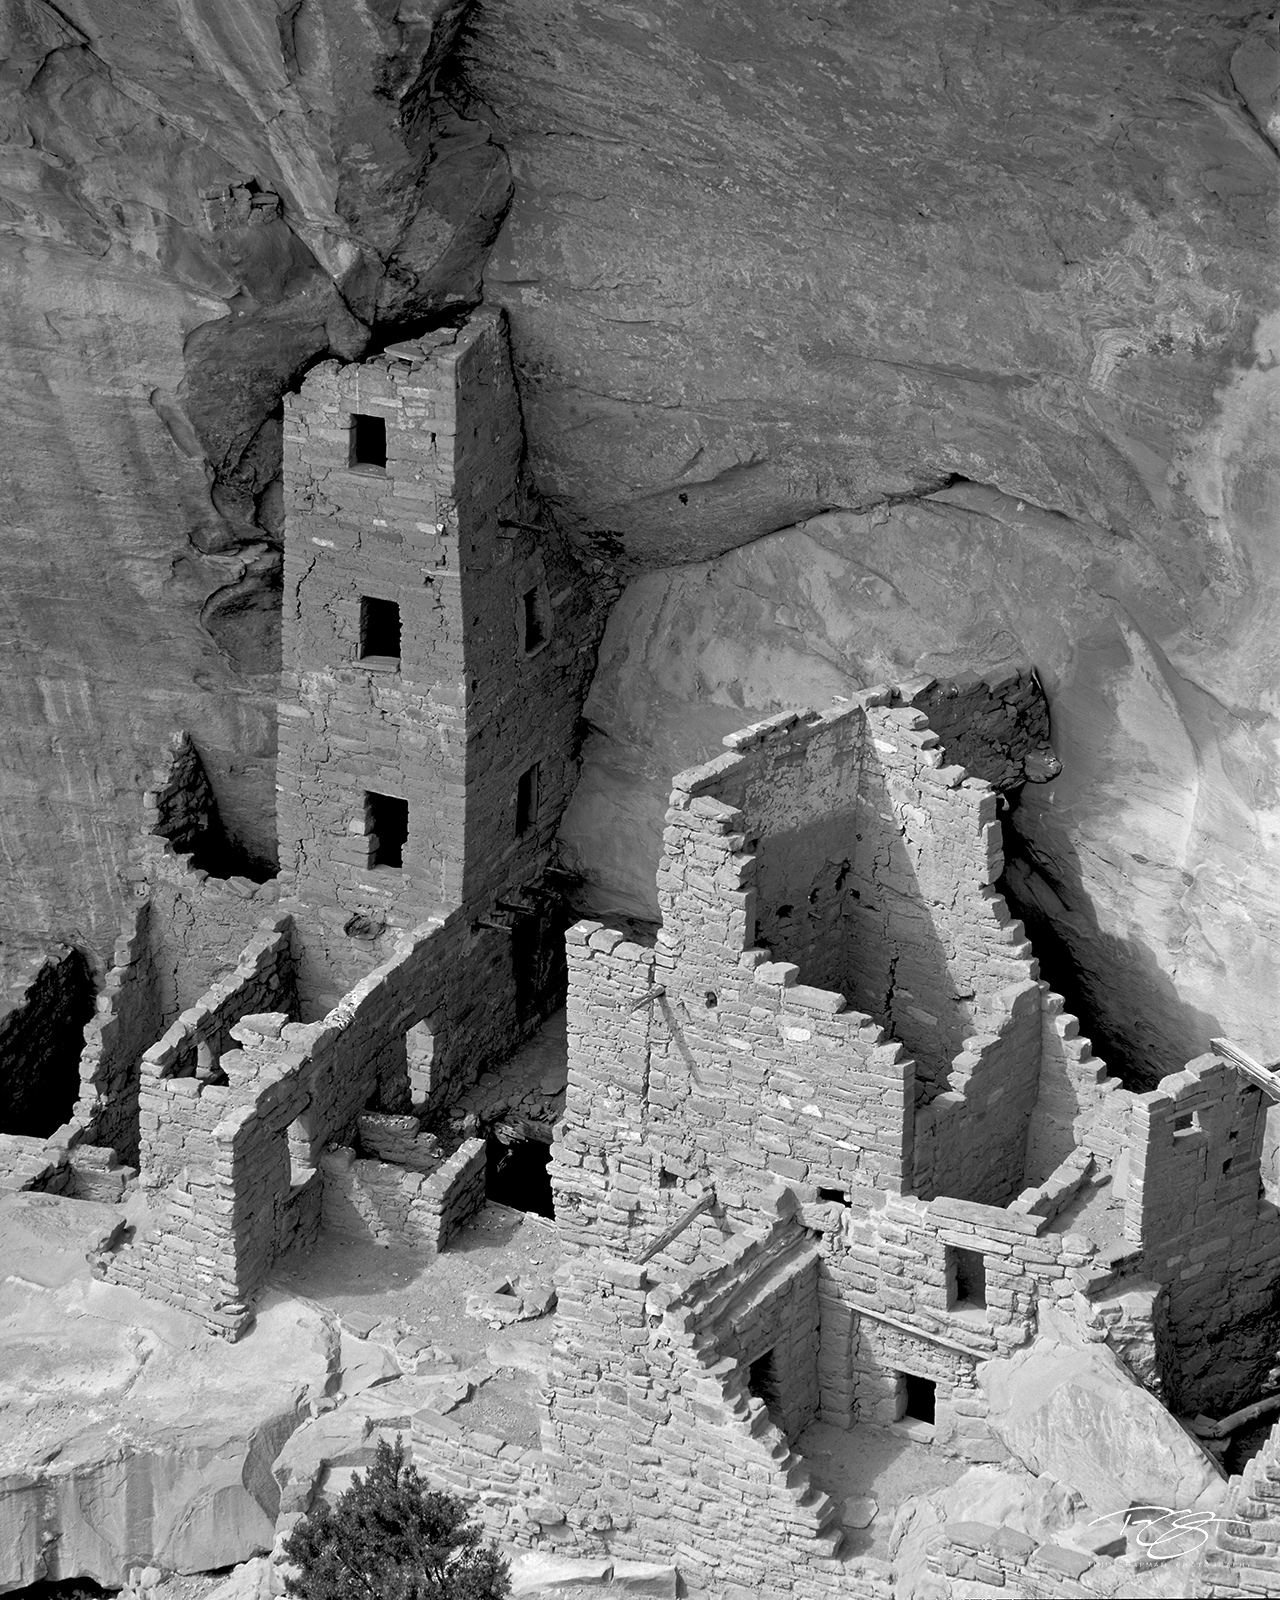 Colorado, Mesa Verde, Square Tower House, Cliff Dwelling, Ceremonial, Anasazi, The Ancient Ones, Ancestral Puebloans, navajo, black and white, monochrome, ruins, photo